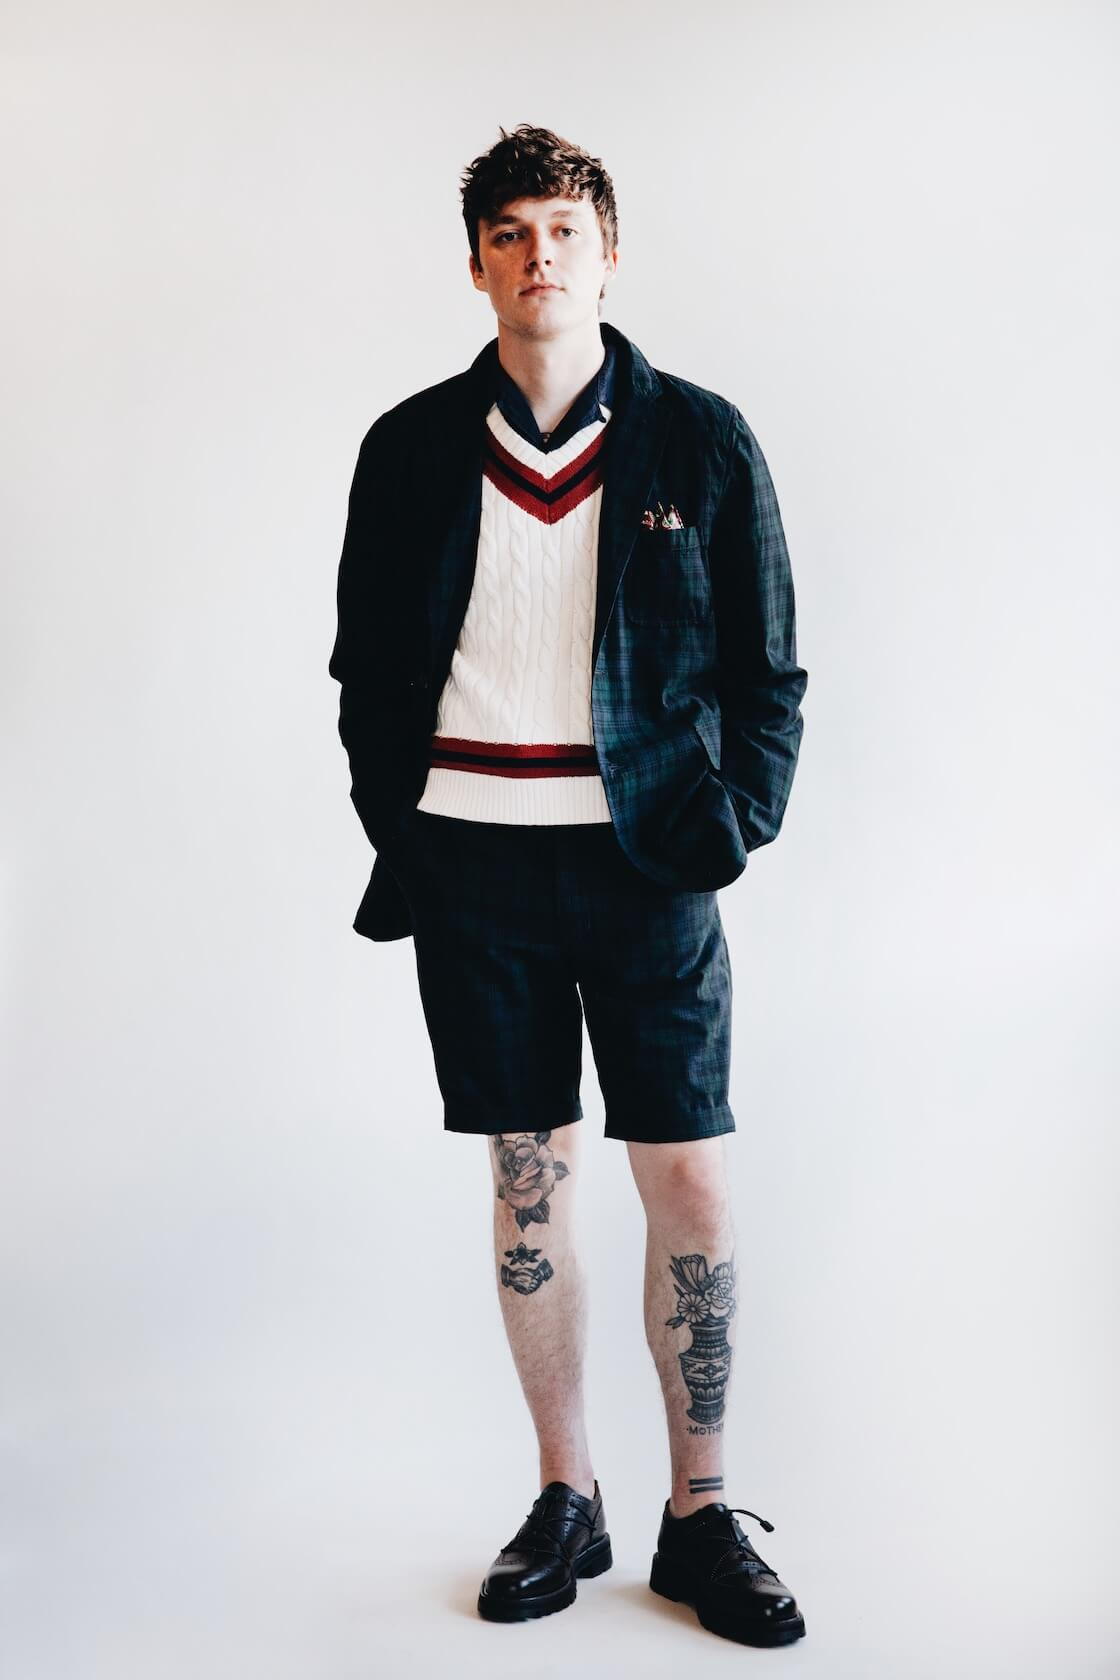 beams plus 3 button shirt jacket, beams plus cricket vest, beams plus ivy shorts and hender scheme code tip shoes on body